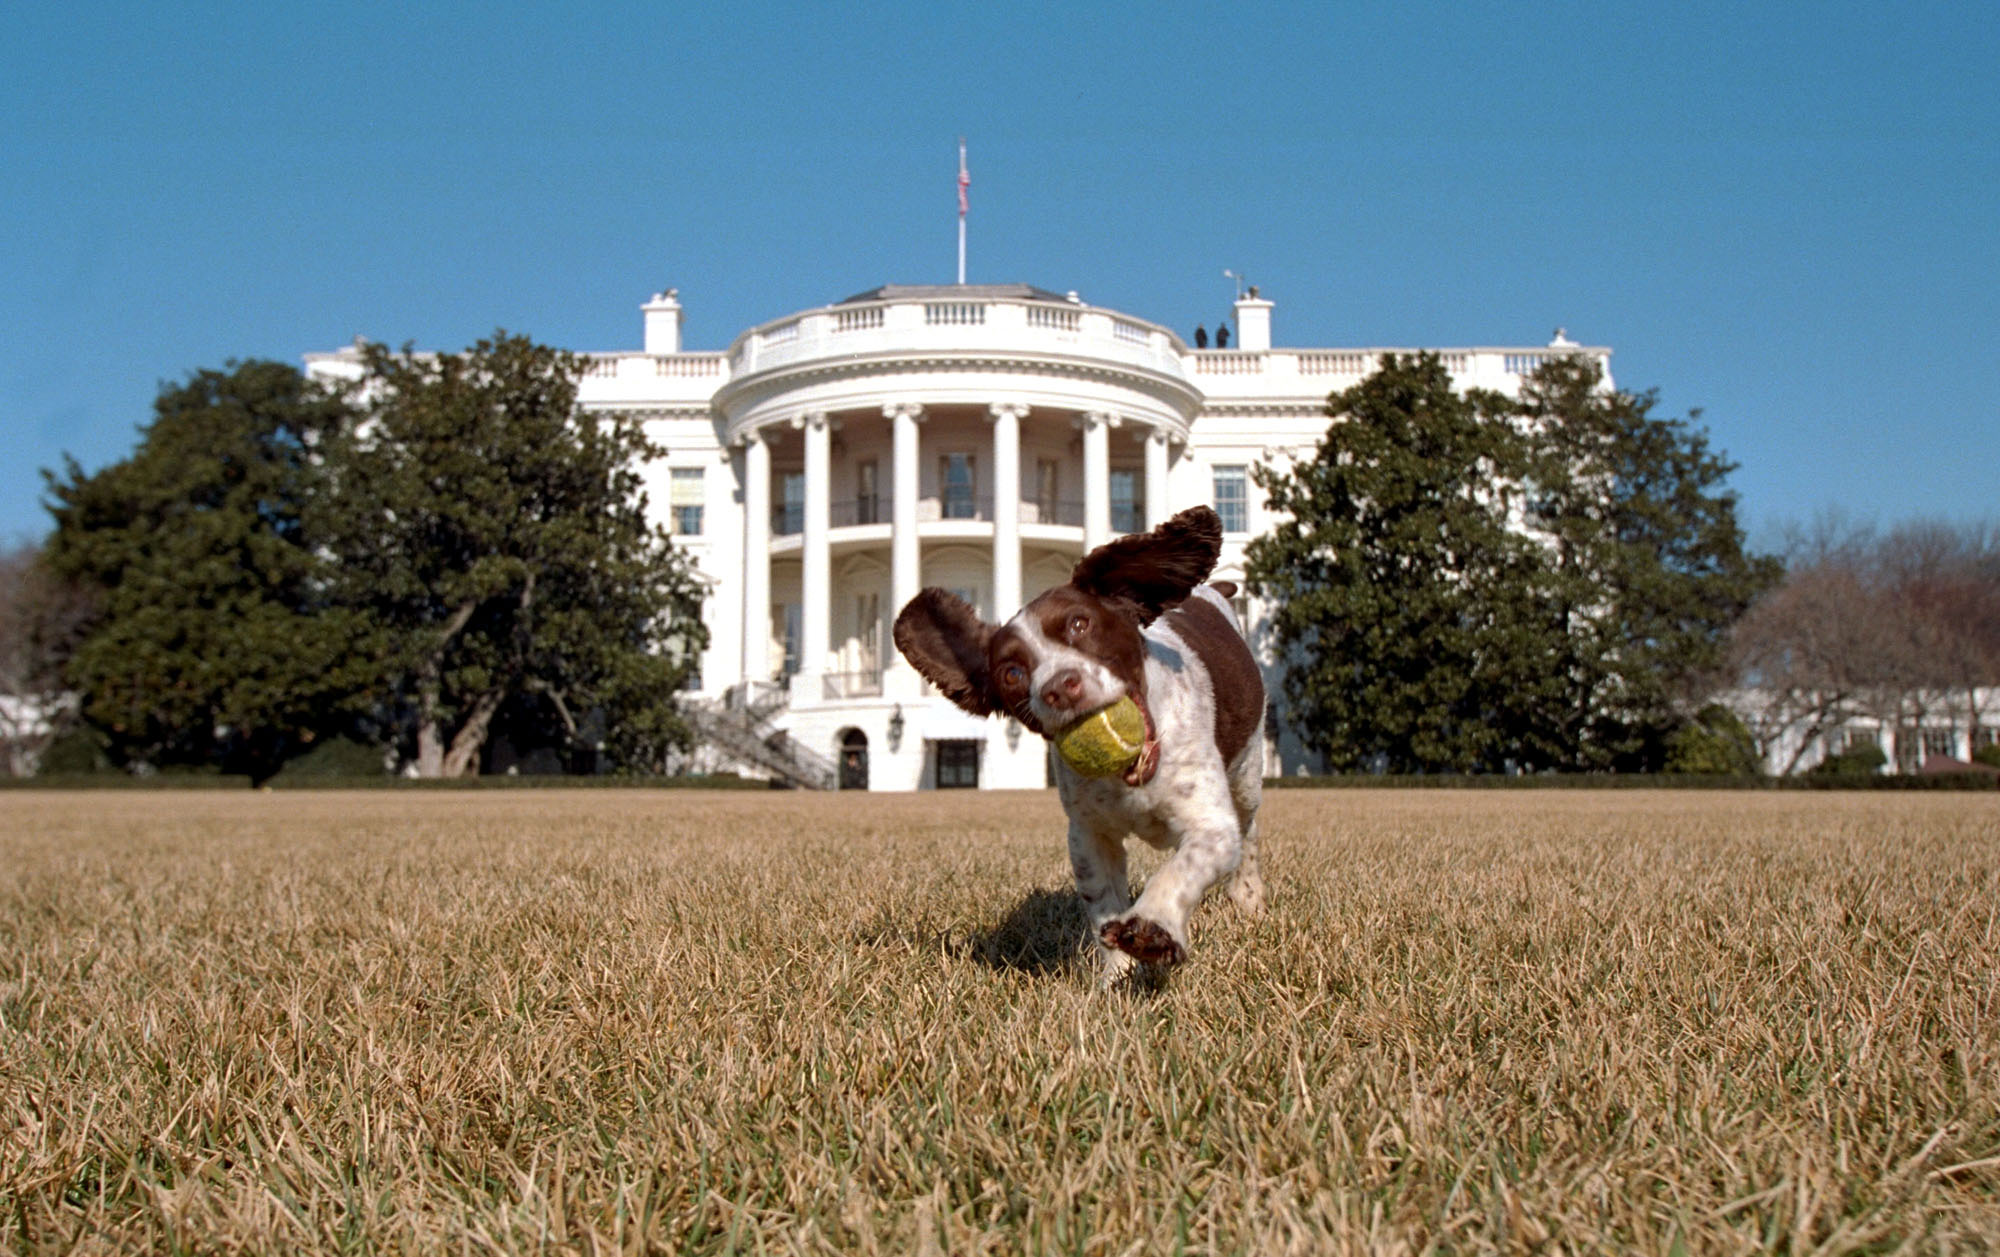 George W. Bush's dog, Spot, an English Springer Spaniel, plays on the south lawn of the White House on Jan. 23, 2001. Spot is the offspring of Millie, who was former President George Bush's family dog.